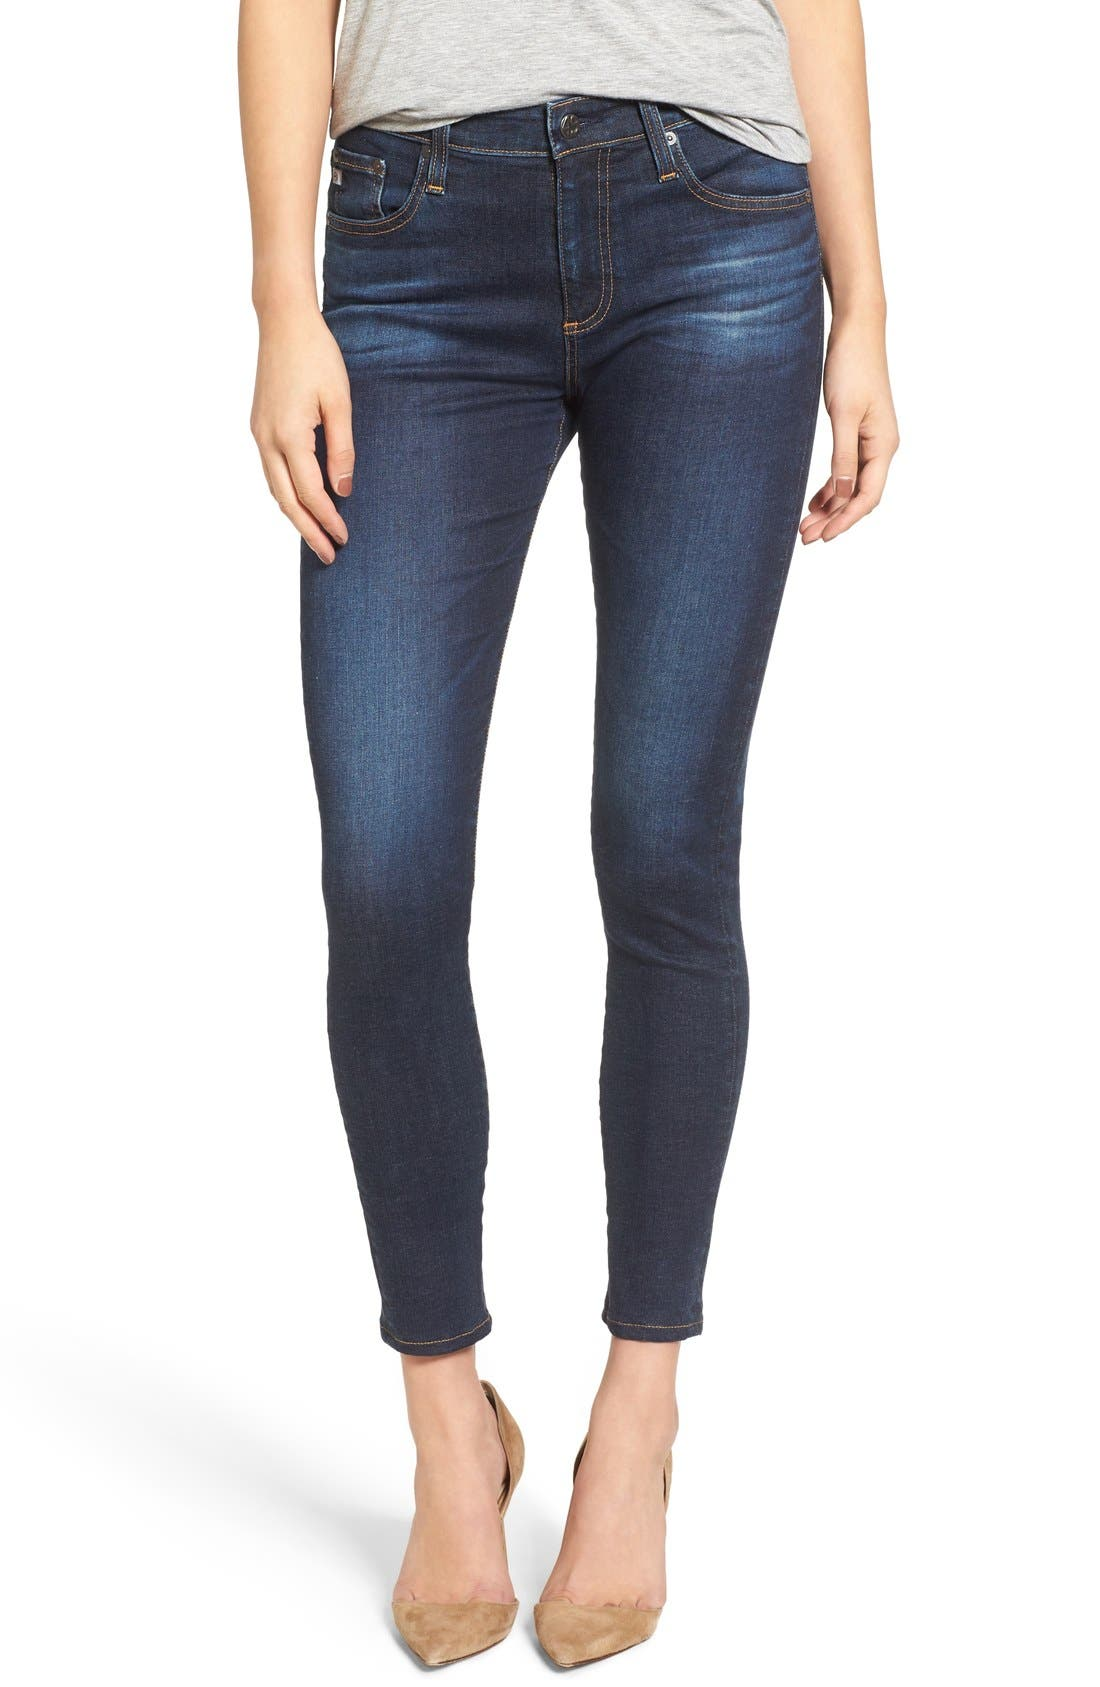 Alternate Image 1 Selected - AG The Farrah High Waist Ankle Skinny Jeans (02 Years Beginnings) (Nordstrom Exclusive)